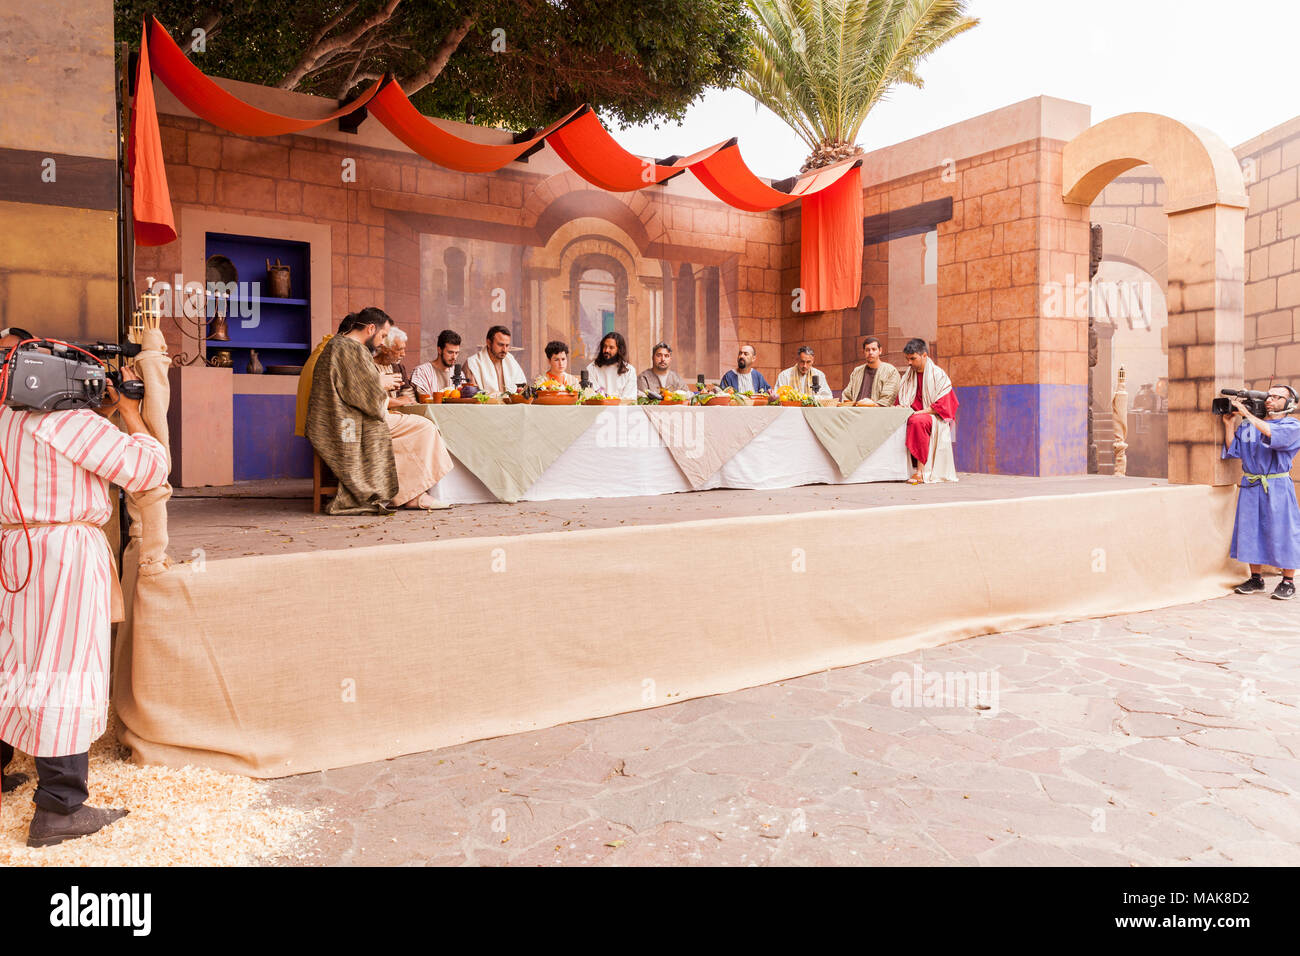 Last supper stage scene at the Good Friday Passion Play, with television cameramen recording for outside broadcast, in the Calle Grande, Adeje, Teneri - Stock Image